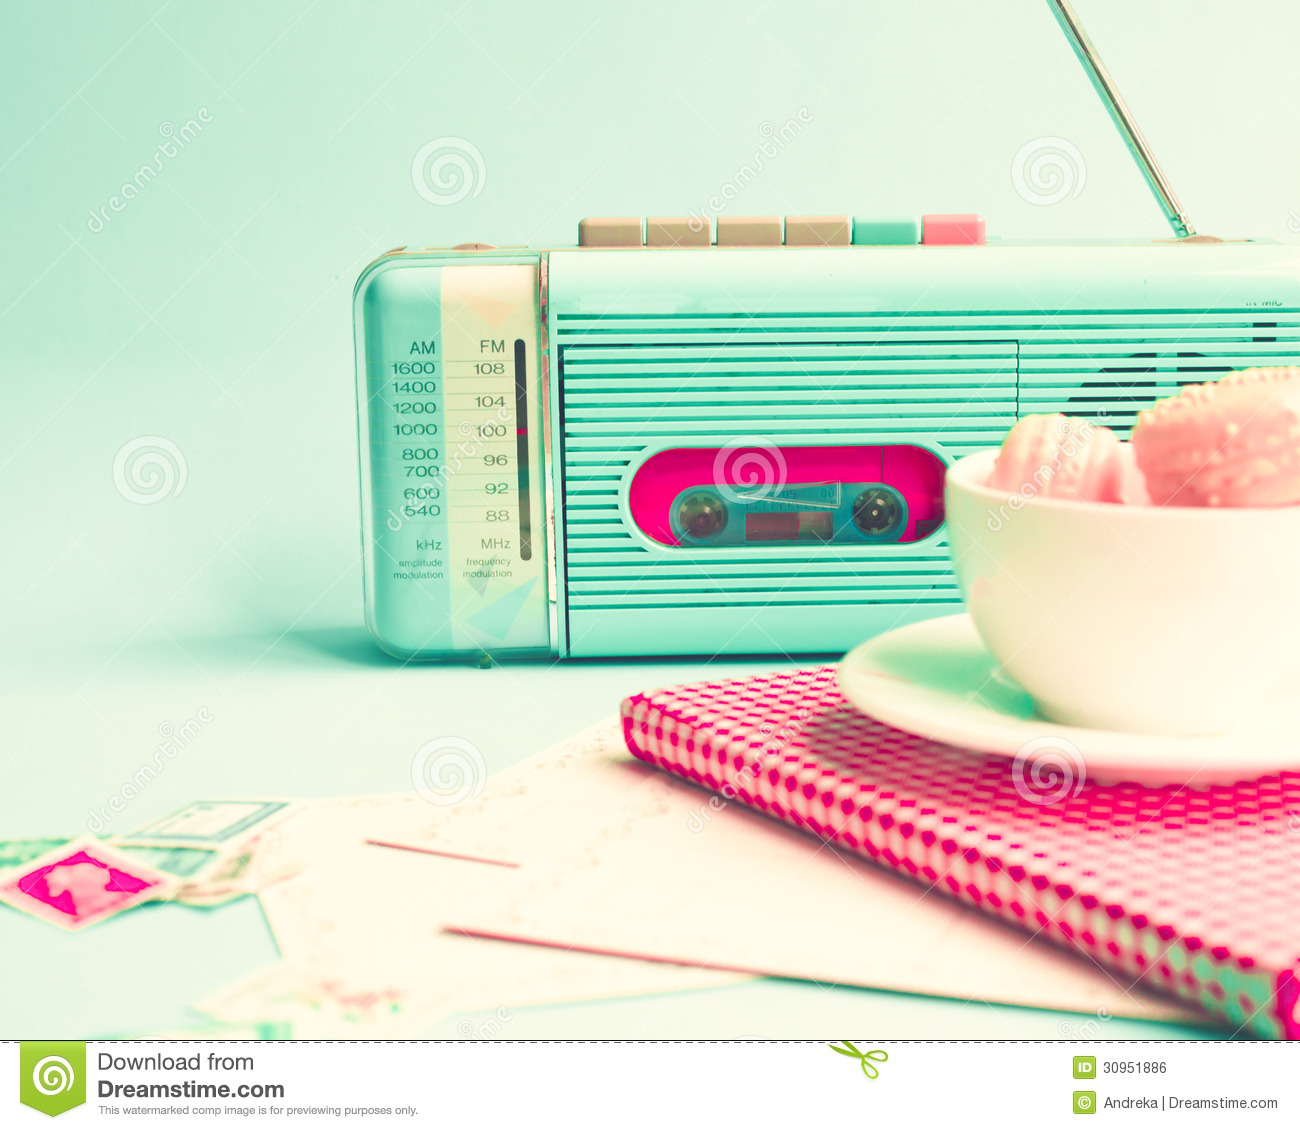 Vintage Radio, Macaroons and Book